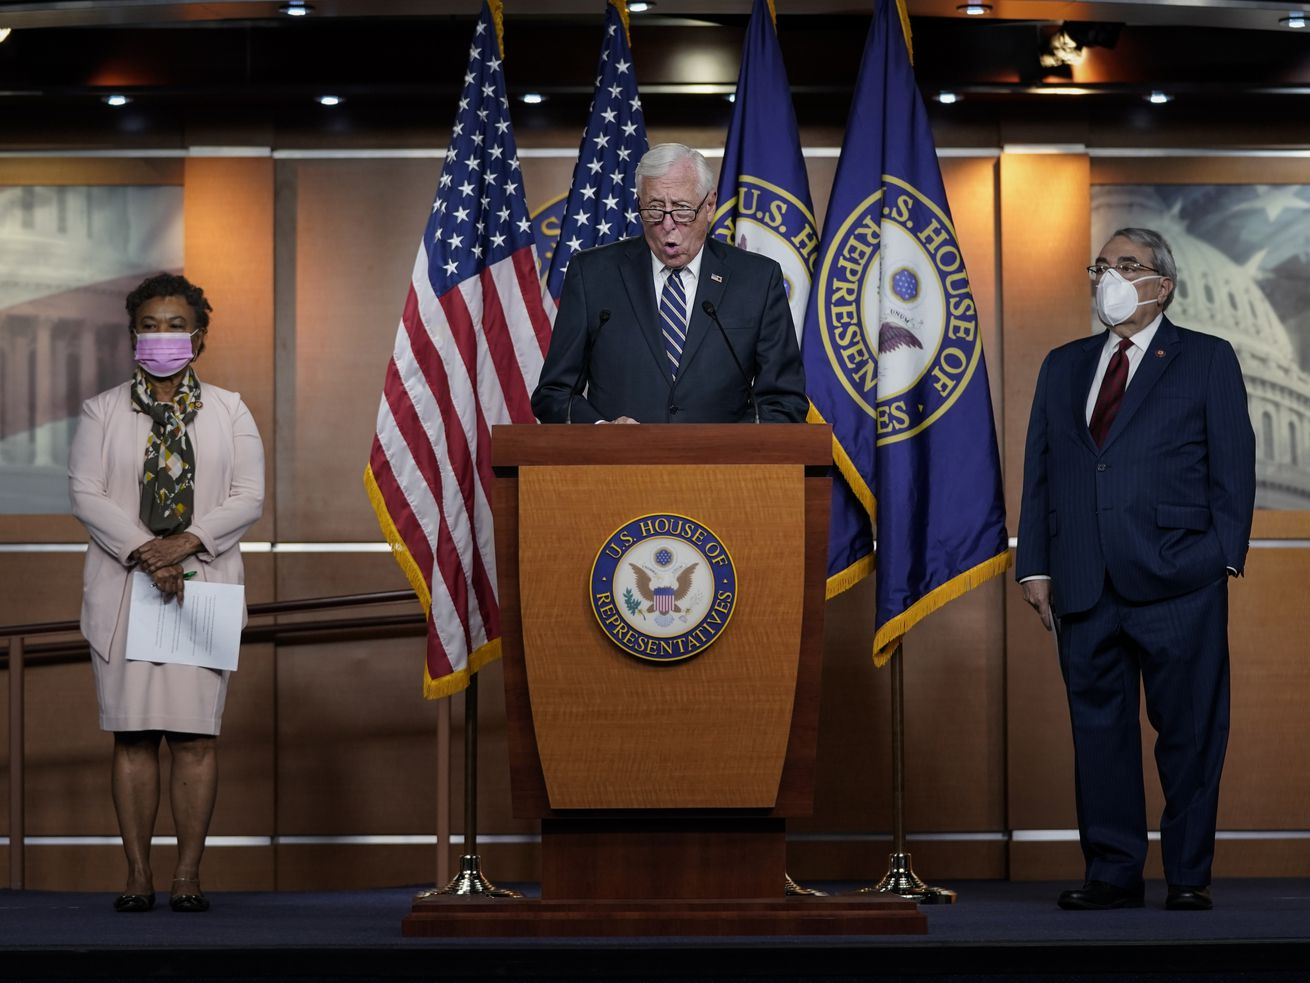 House Democrats in 2020, including (L-R) Rep. Barbara Lee (D-Calif.), Rep. G.K. Butterfield (D-N.C.) and House Majority Leader Rep. Steny Hoyer (D-Md.), introduced a bill that would replace the bust of former Supreme Court Chief Justice Roger B. Taney in the Old Supreme Court Chamber at the U.S. Capitol with one of former Justice Thurgood Marshall. Taney was the author of the 1857 Dred Scott decision that declared African Americans couldn't be citizens. The measure passed the House on Tuesday.